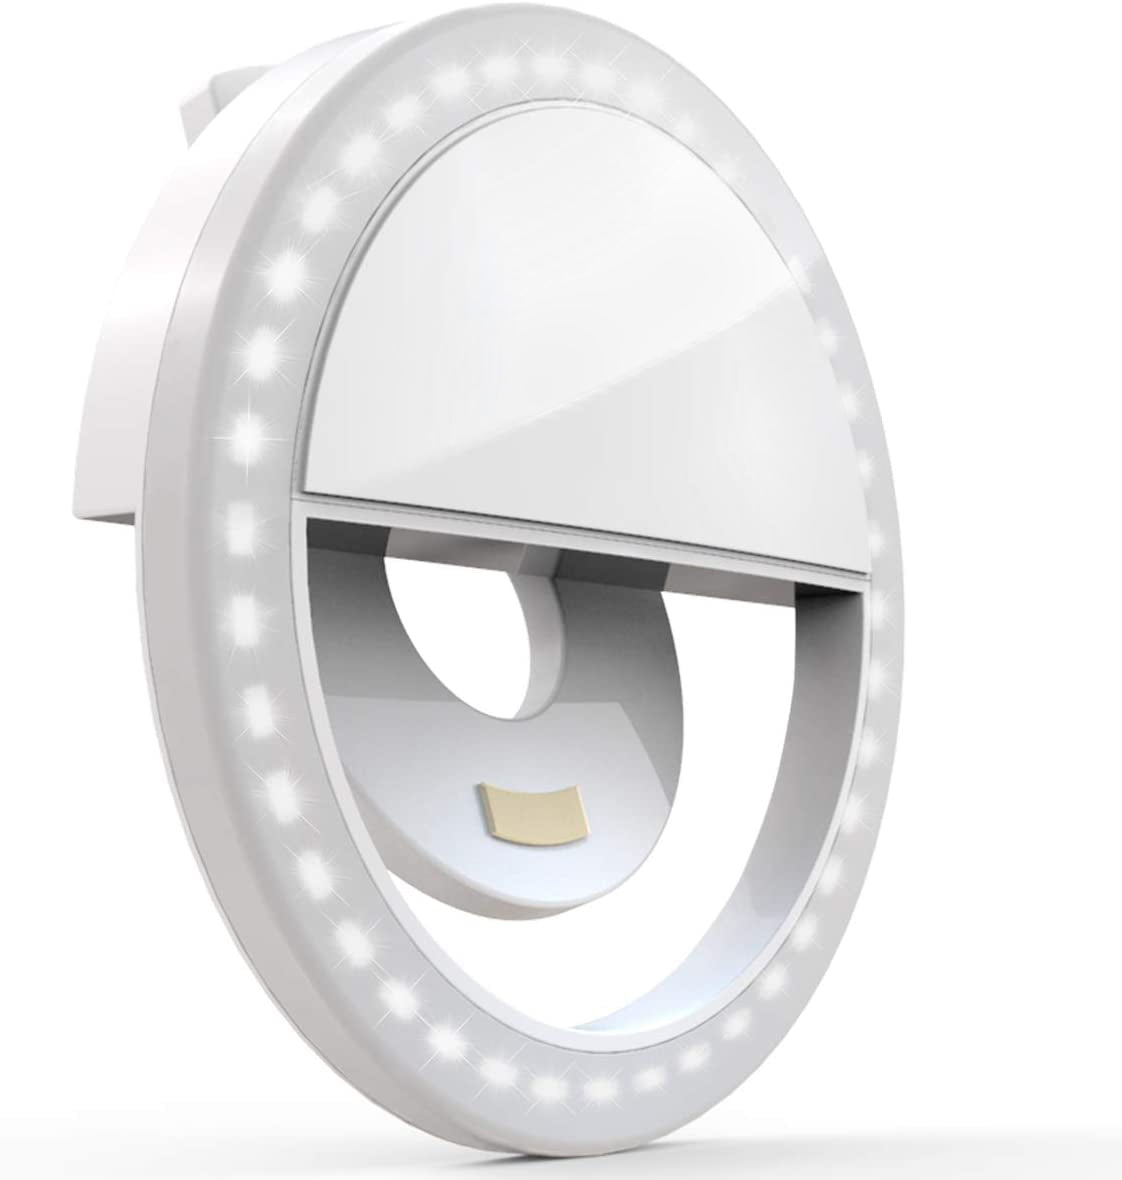 Clip on Selfie Ring Light [Rechargeable Battery] with 36 LED for Smart Phone Camera Round Shape, White